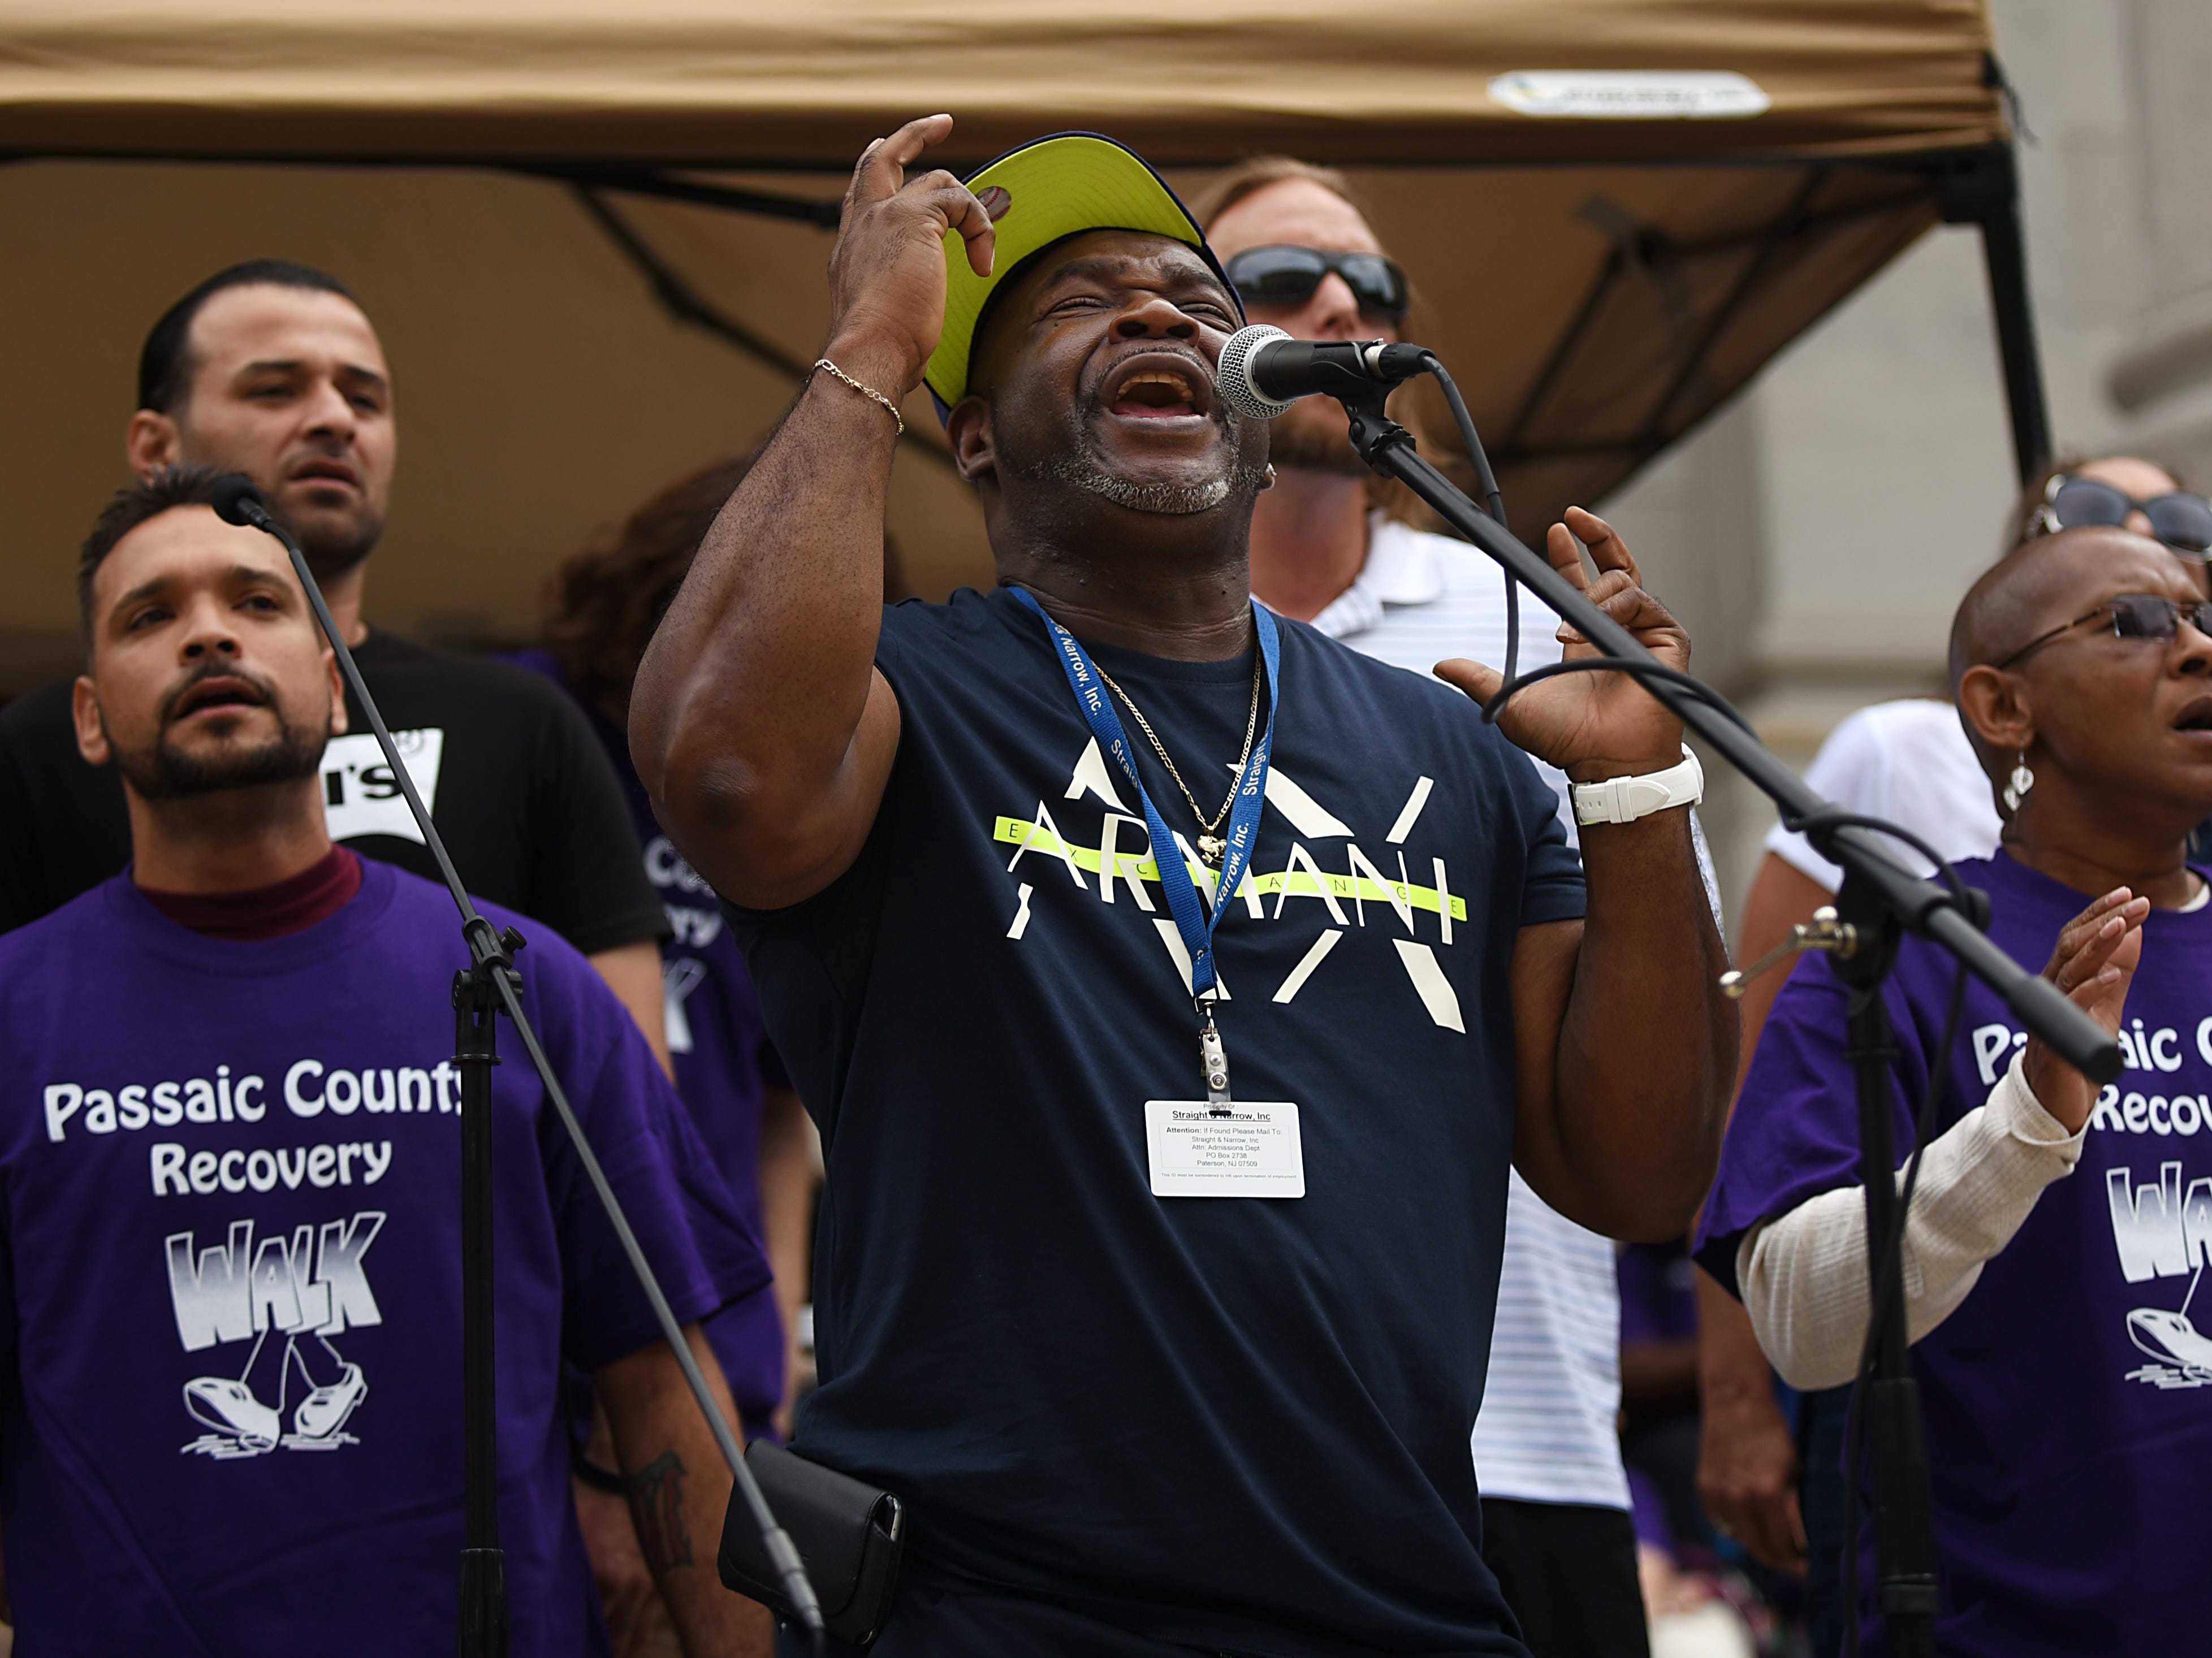 (Center) Irv DeBois, the Straight & Narrow Choir Liason, sings prior with the choir prior to the Passaic County Recovery Walk in Paterson on Saturday September 8, 2018.